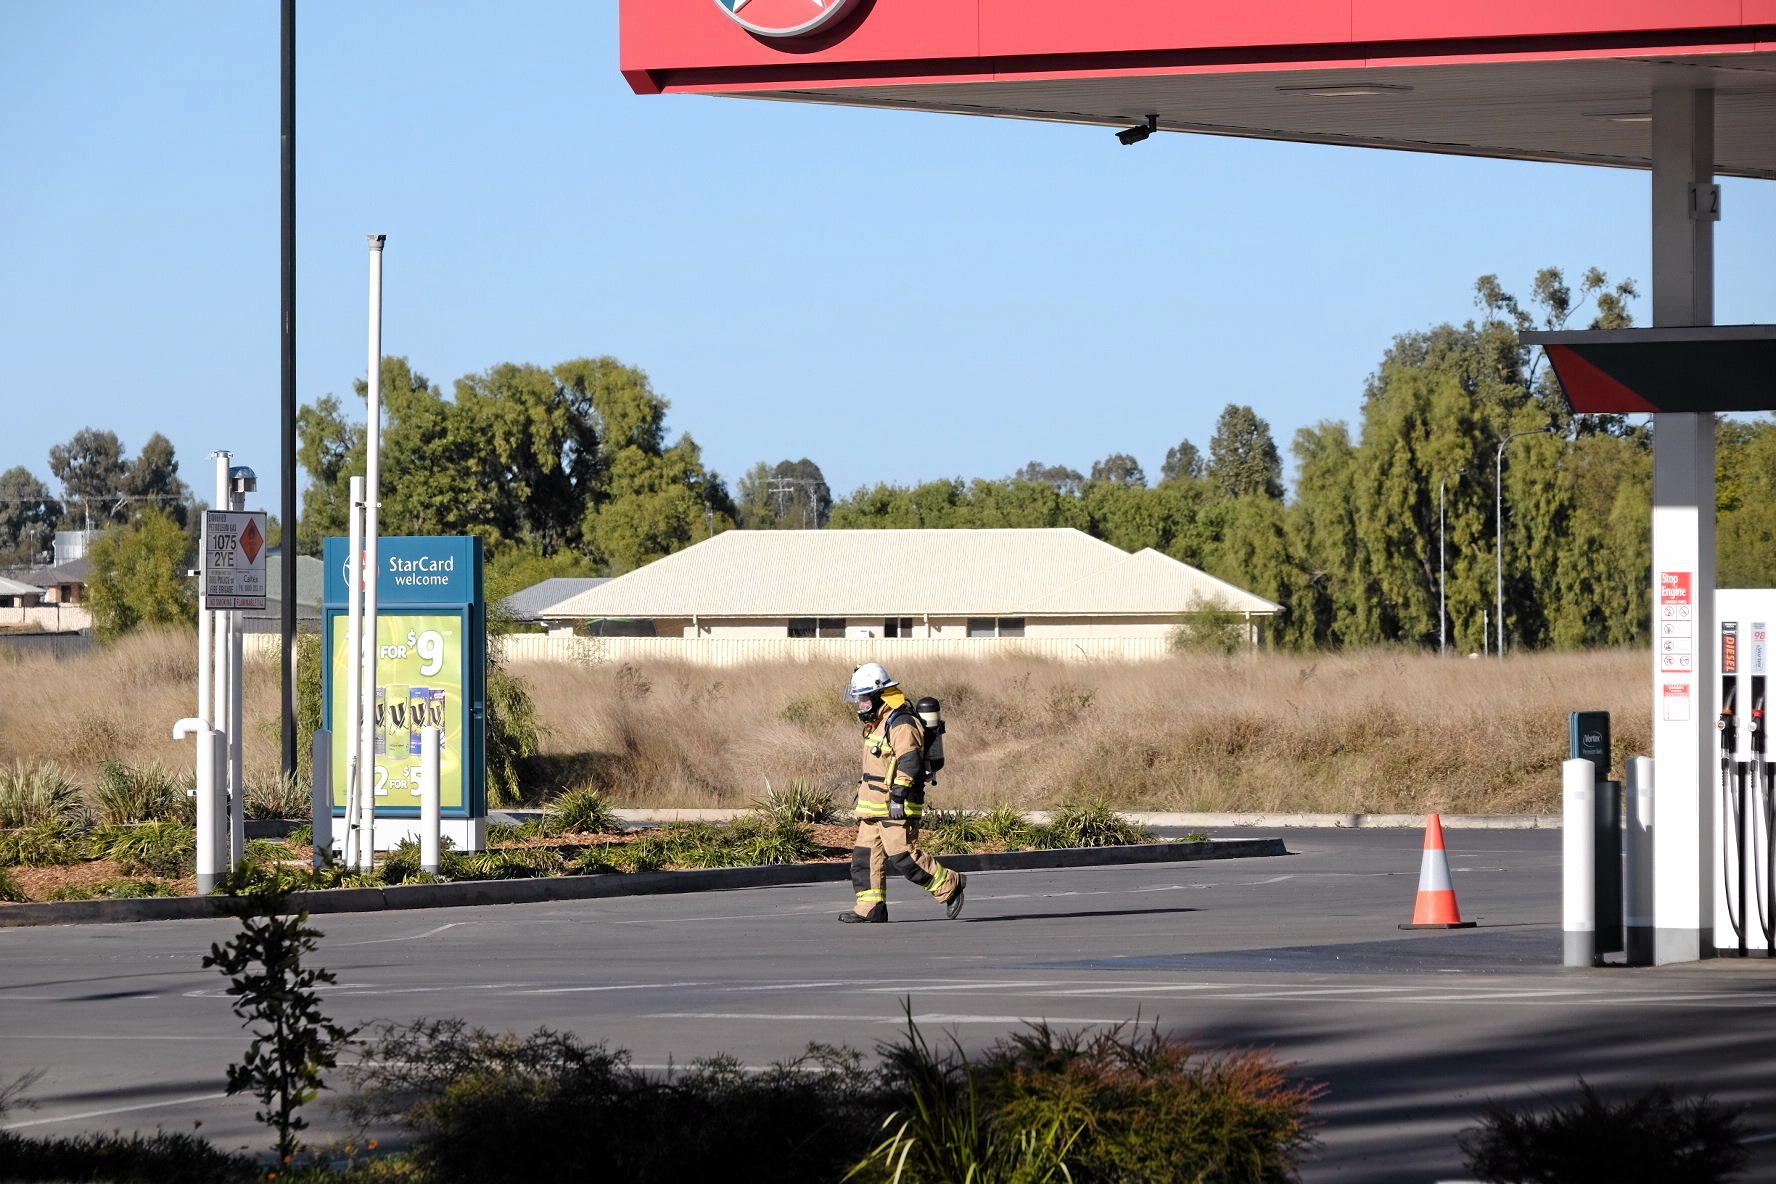 Queensland Fire and Emergency Services attend to a suspected gas leak at Chinchilla Caltex on Saturday morning.